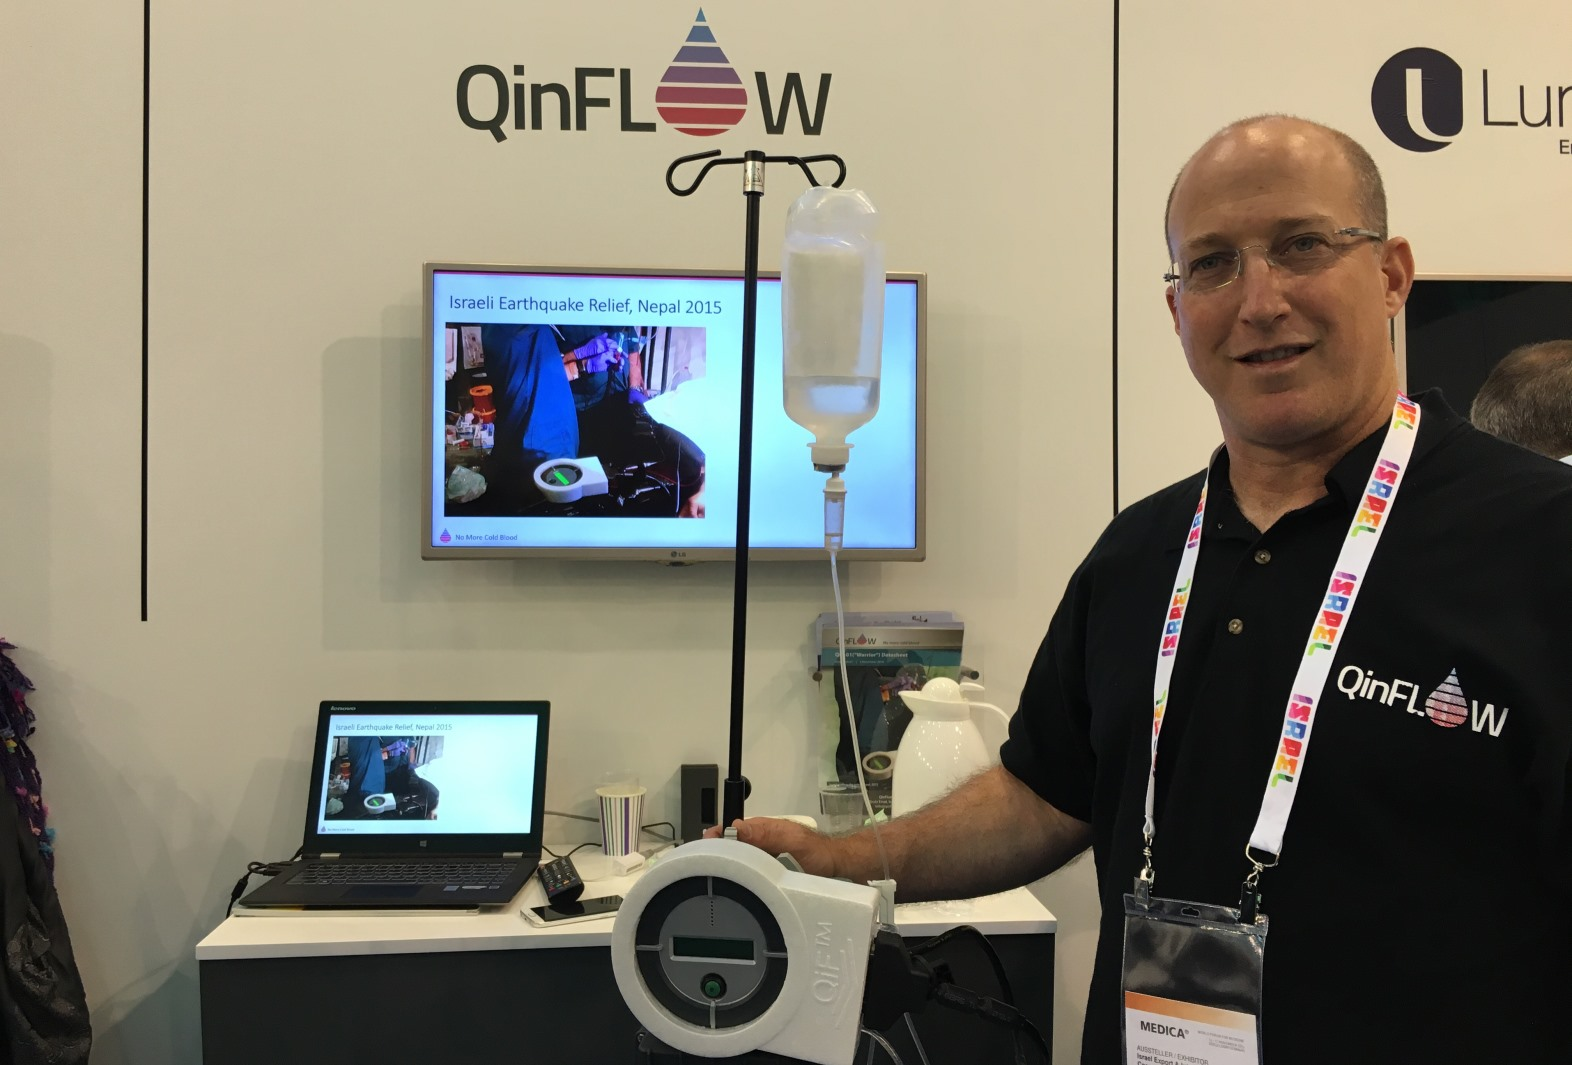 QinFlow's Ariel Katz demonstrating the fluid-warming device at the Medica Conference in Dusseldorf in November 2016. Photo: courtesy